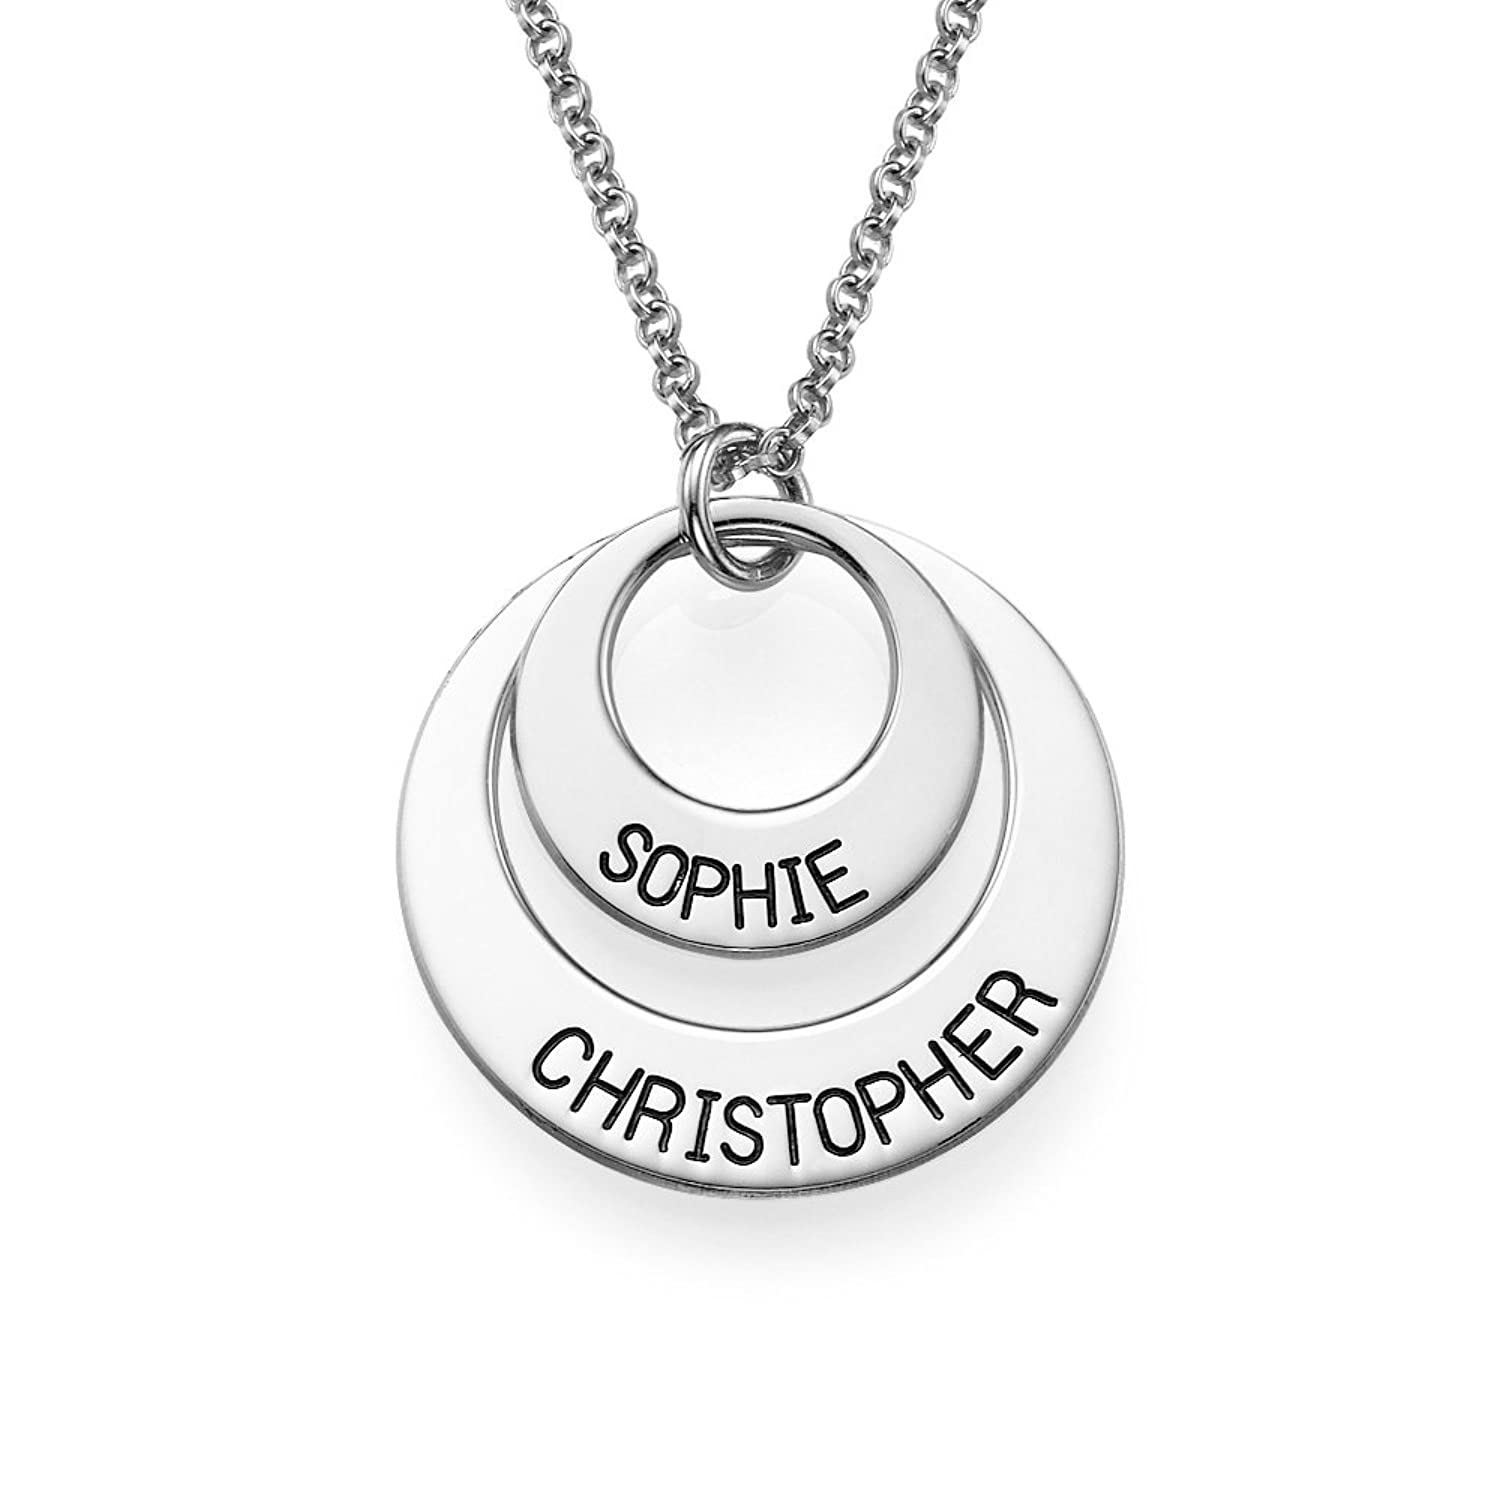 Amazon personalized disc necklace engraved with any name amazon personalized disc necklace engraved with any name perfect gift for her jewelry aloadofball Images